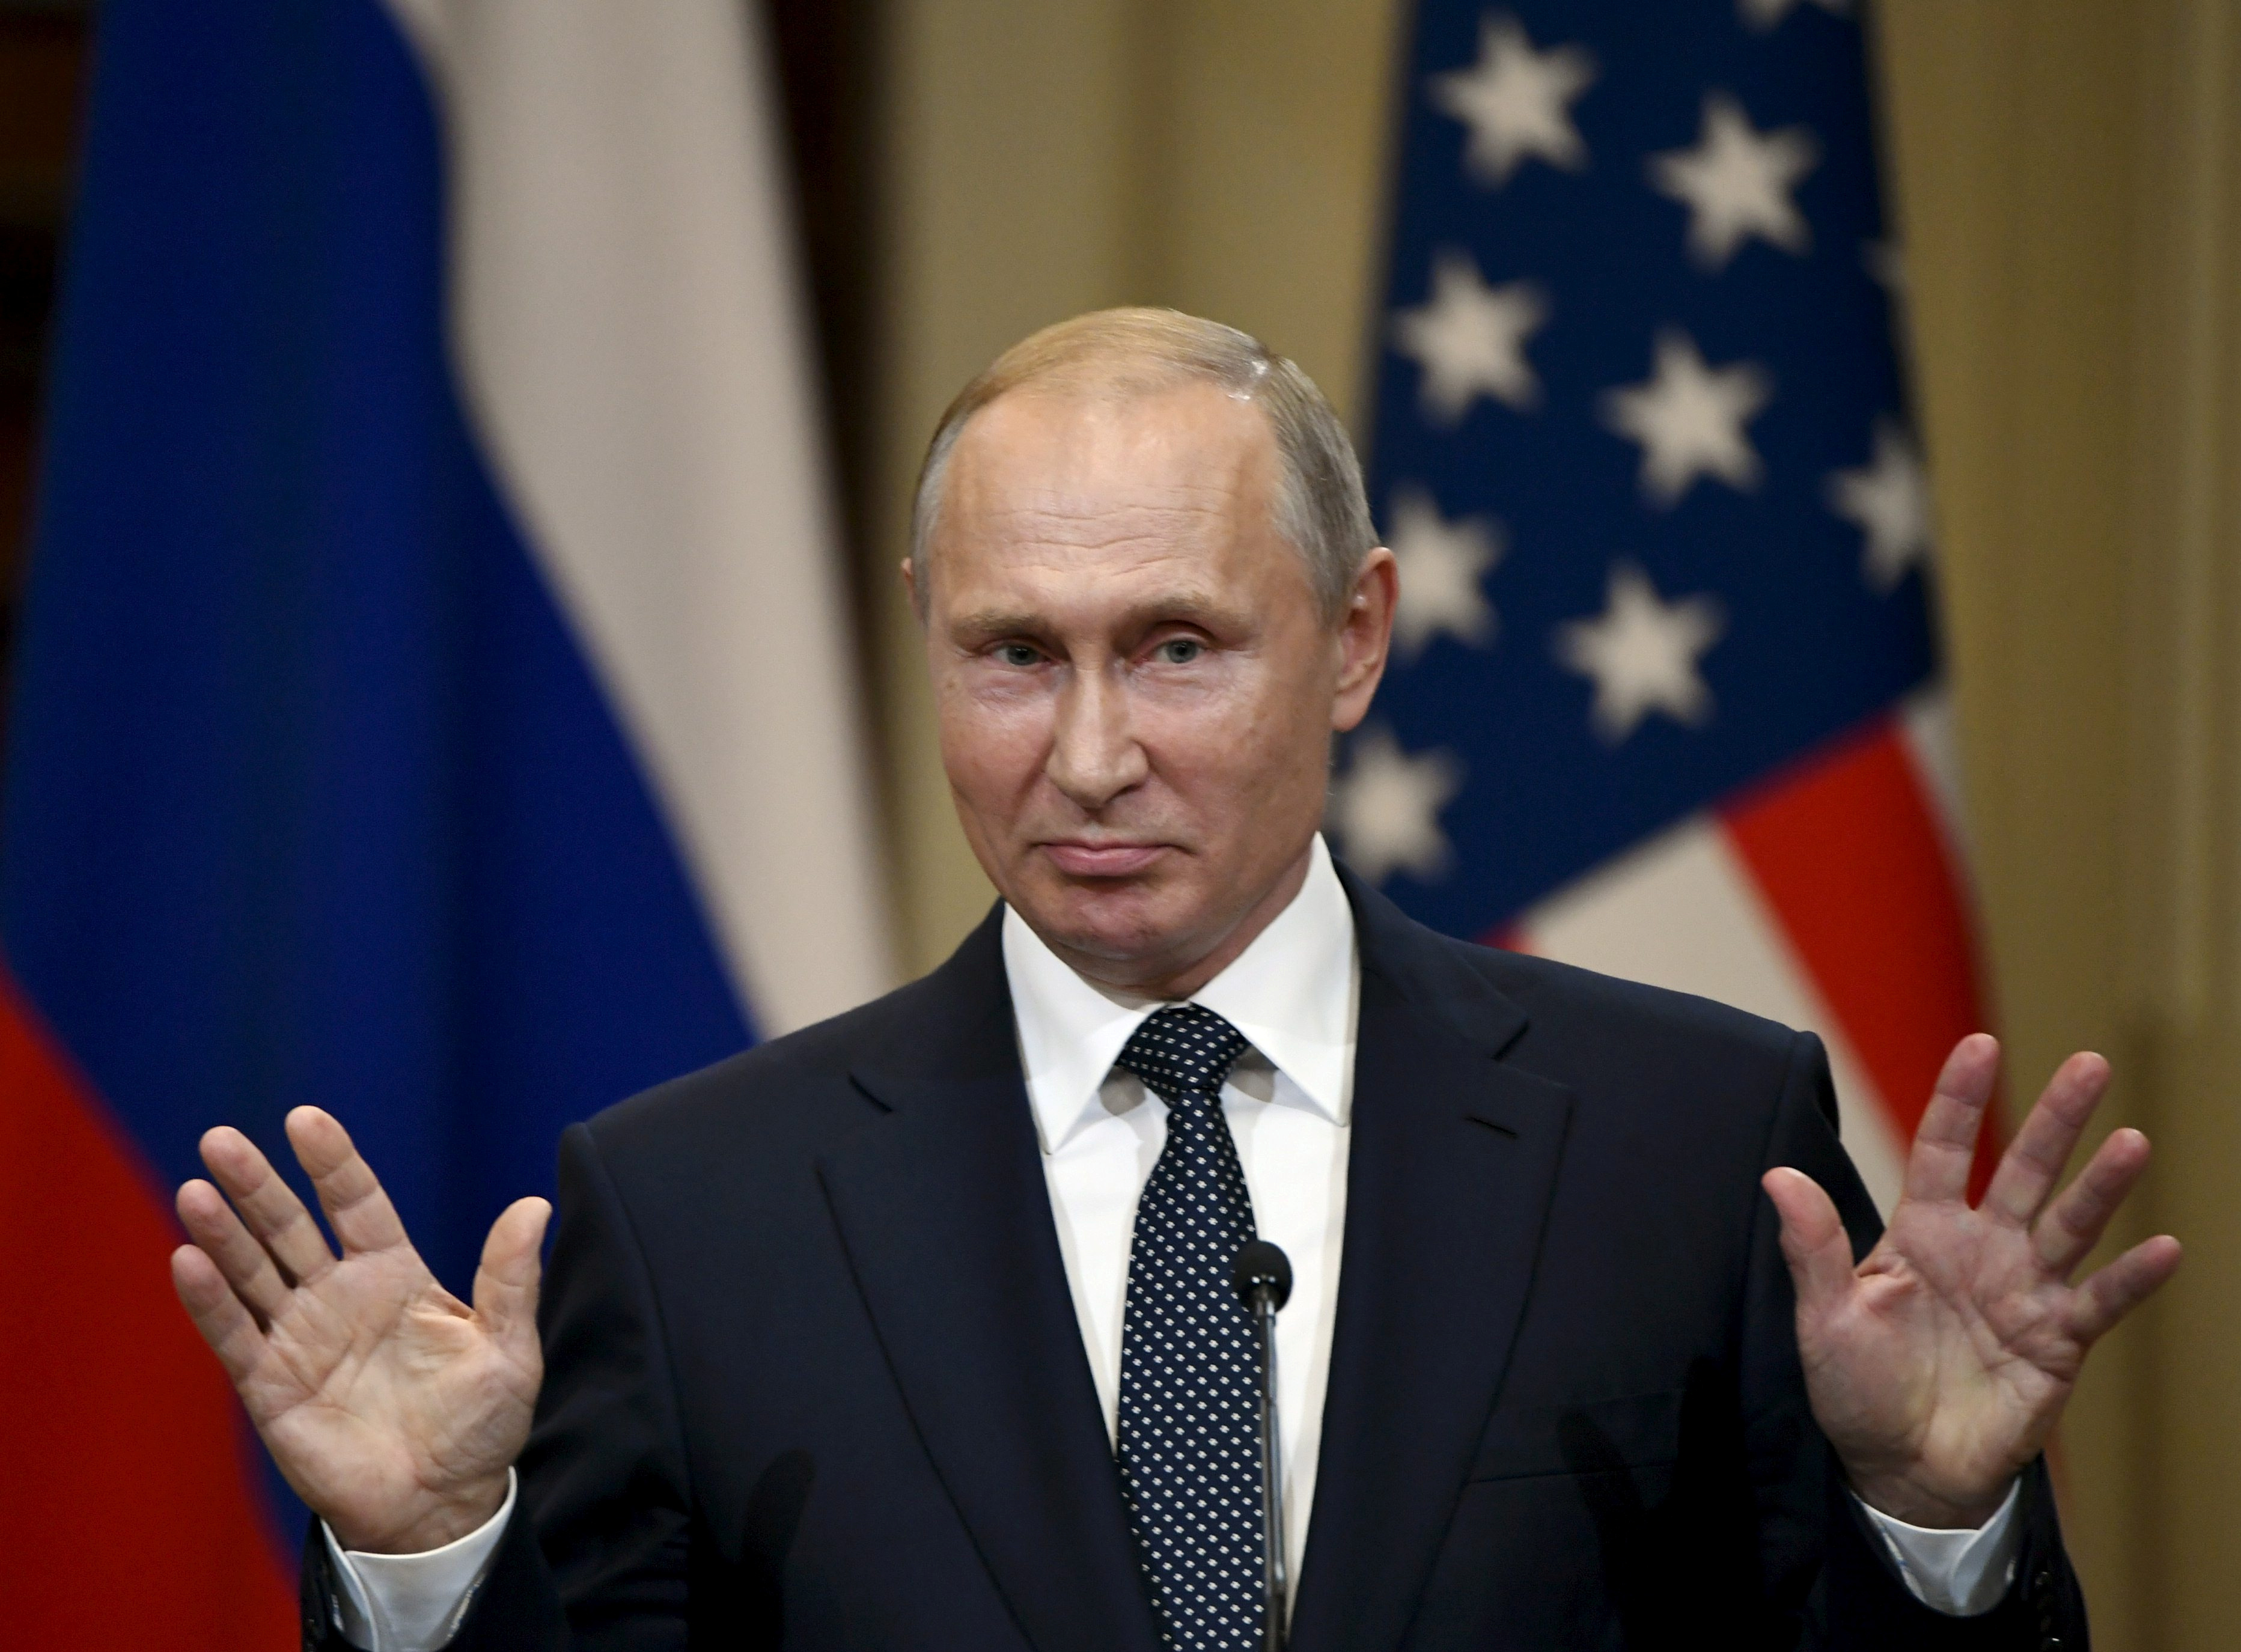 Russia's President Vladimir Putin gestures during the joint press conference with U.S. President Donald Trump in the Presidential Palace in Helsinki, Finland July 16, 2018. Lehtikuva/Jussi Nukari via REUTERS ATTENTION EDITORS - THIS IMAGE WAS PROVIDED BY A THRID PARTY. FINLAND OUT. NO THIRD PARTY SALES. - RC1B96AA9050